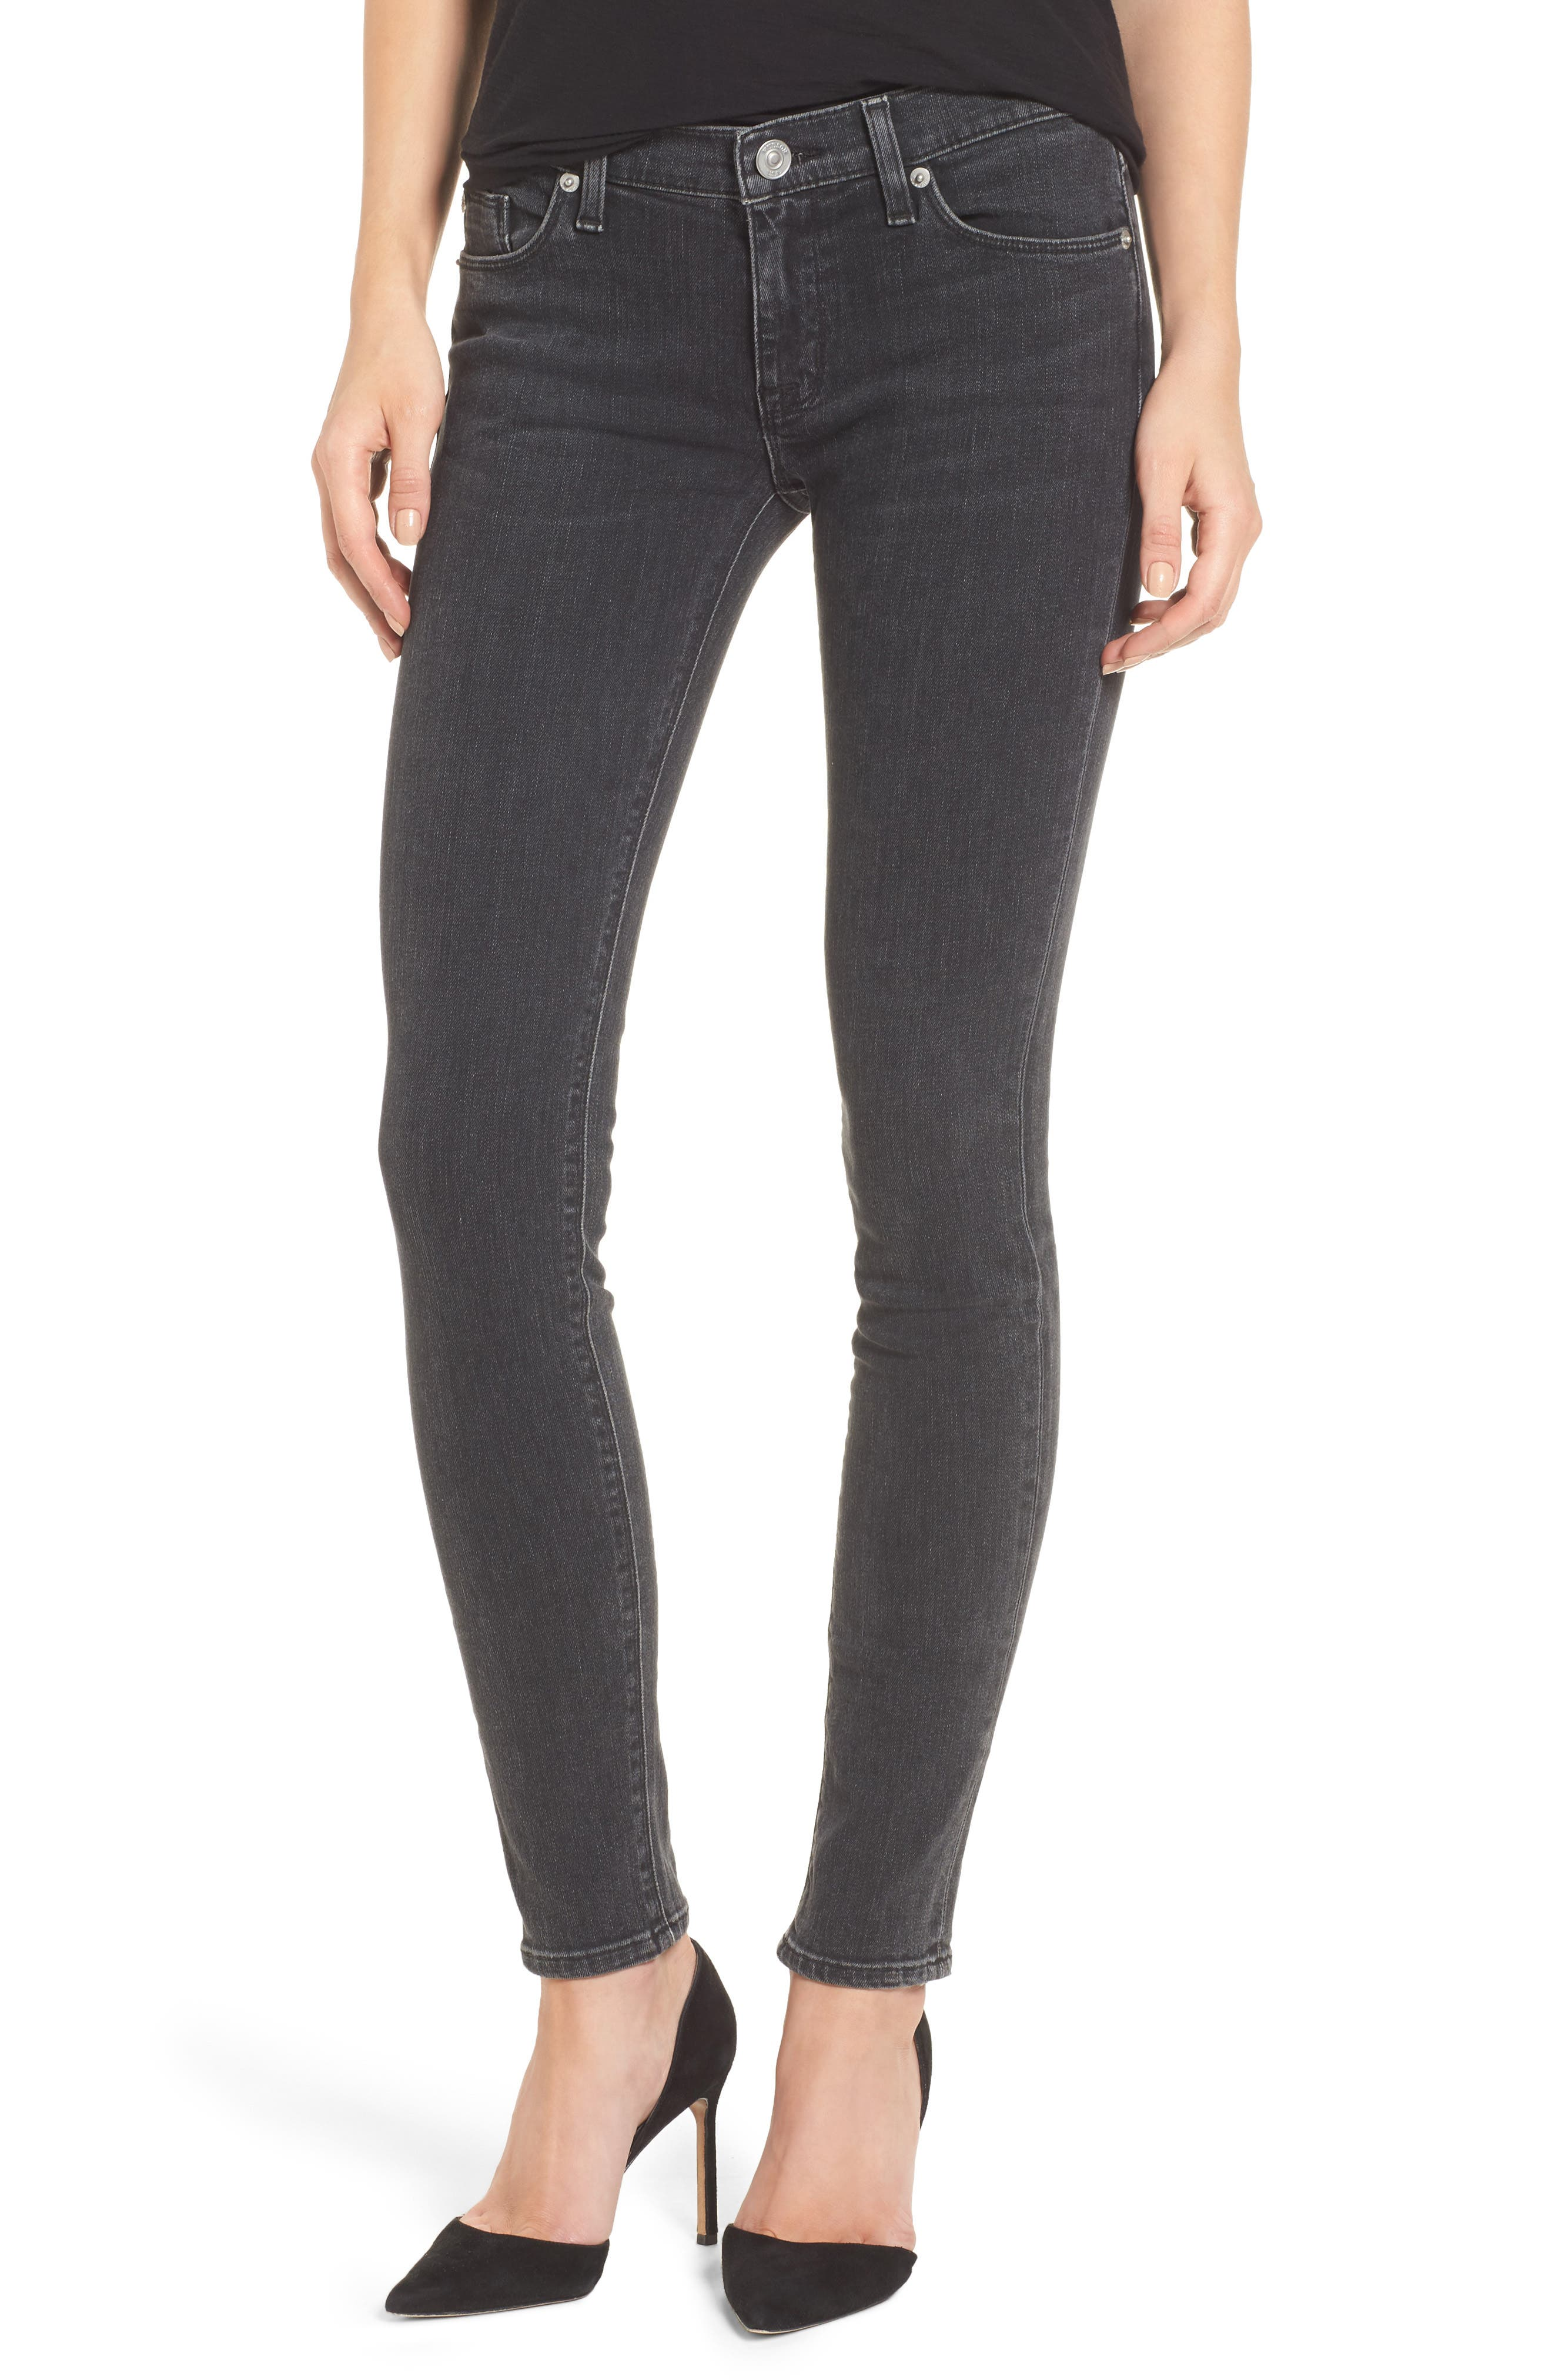 Krista Super Skinny Jeans,                             Main thumbnail 1, color,                             001